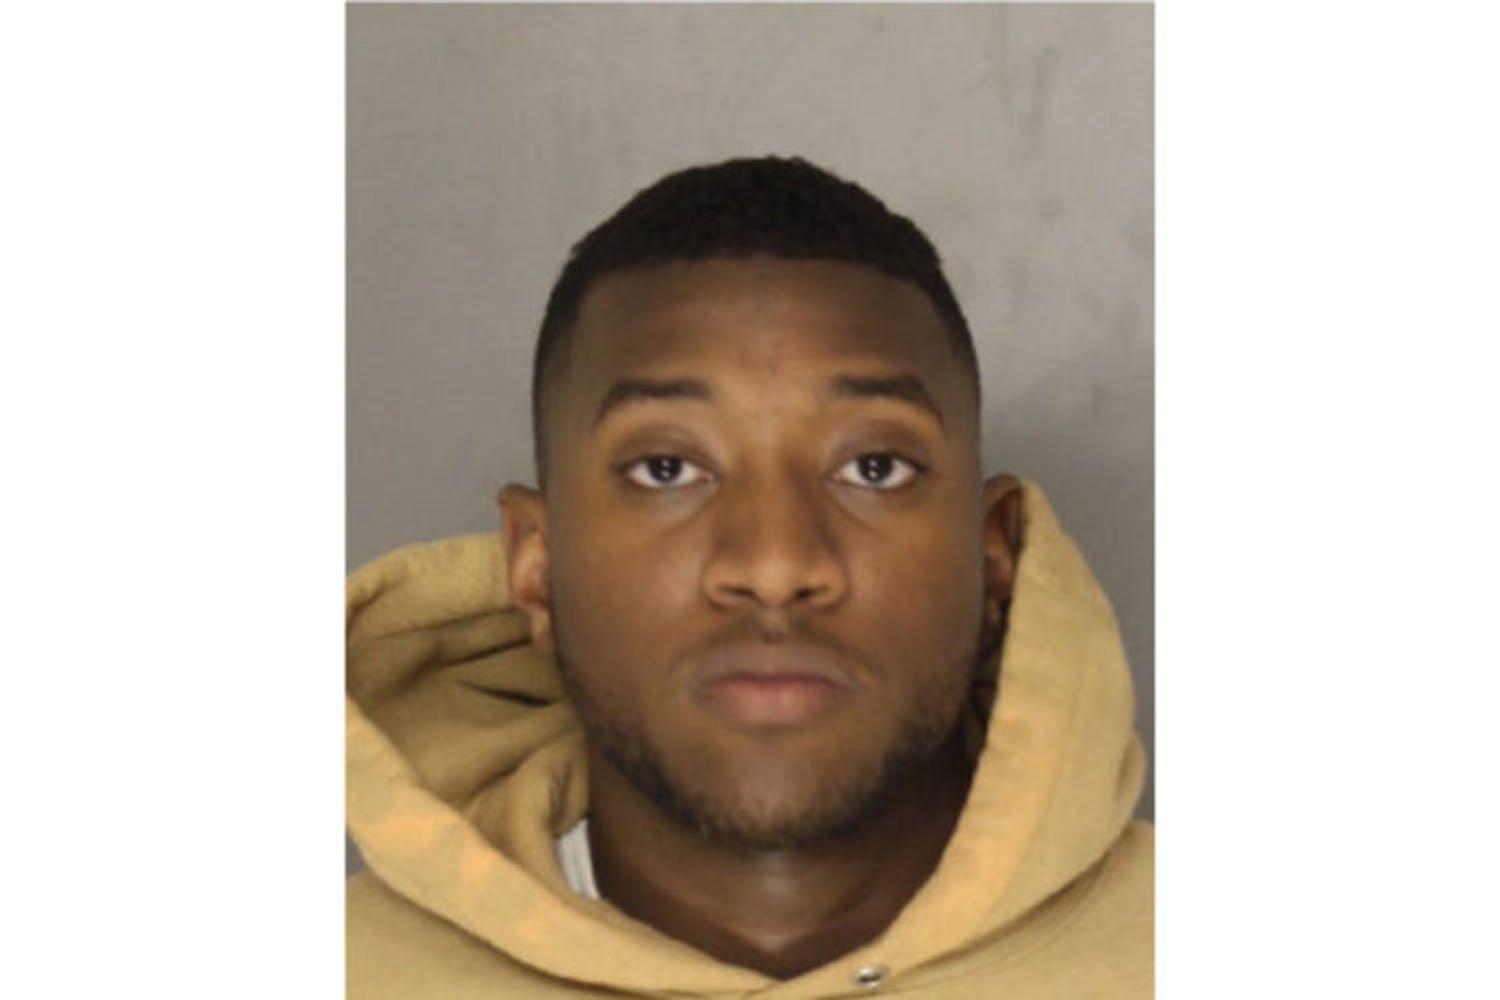 Police believe that Darby used a claw type hammer and two stainless steel knives to kill Sheykhet. (Courtesy of Pittsburgh Police)